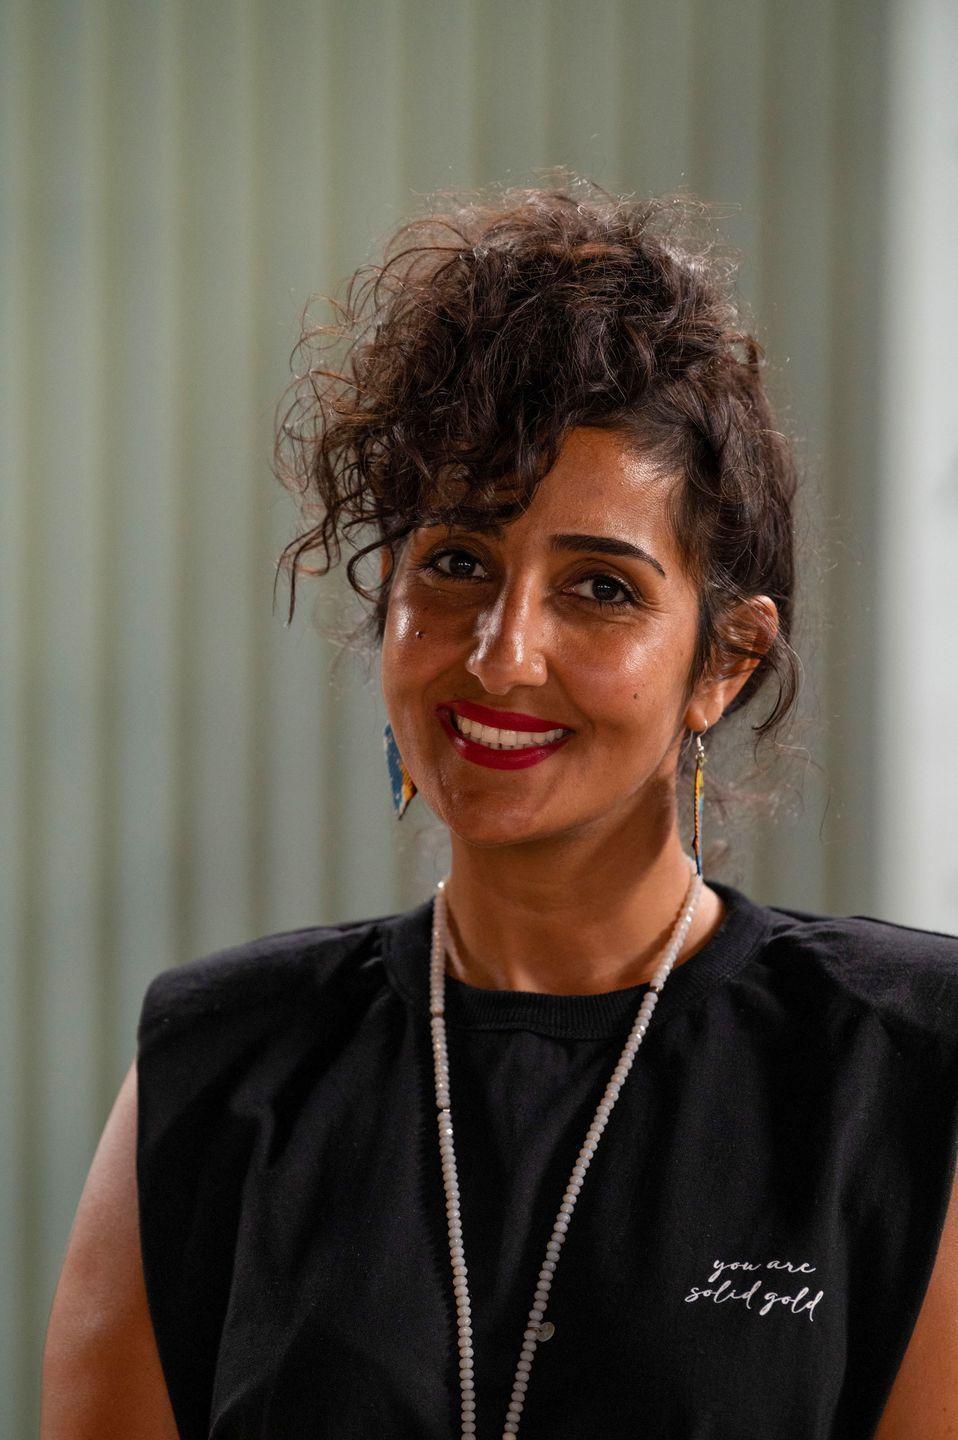 """<p>Film set designer Mona who lives in Brixton, London, says lockdown was the perfect time for her to be on the show, as it meant she had more time on her hands. </p><p><strong>Q:</strong> Which <a href=""""https://www.housebeautiful.com/uk/decorate/a34943483/interior-trends-ranked/"""" rel=""""nofollow noopener"""" target=""""_blank"""" data-ylk=""""slk:interior"""" class=""""link rapid-noclick-resp"""">interior</a> designers is your style most like?</p><p><strong>A:</strong> 'A strong Scandinavian style with the right balance of shabby chic, rustic elements, contemporary touch, industrial kiss, bohemian flowers, traditional love and Bauhaus obsession is my signature style. I couldn't say there is a specific designer which I believe my style is most like, as I love so many designers. I would call my style tasteful and I believe my happy and colourful personality is mirrored in it.'</p>"""